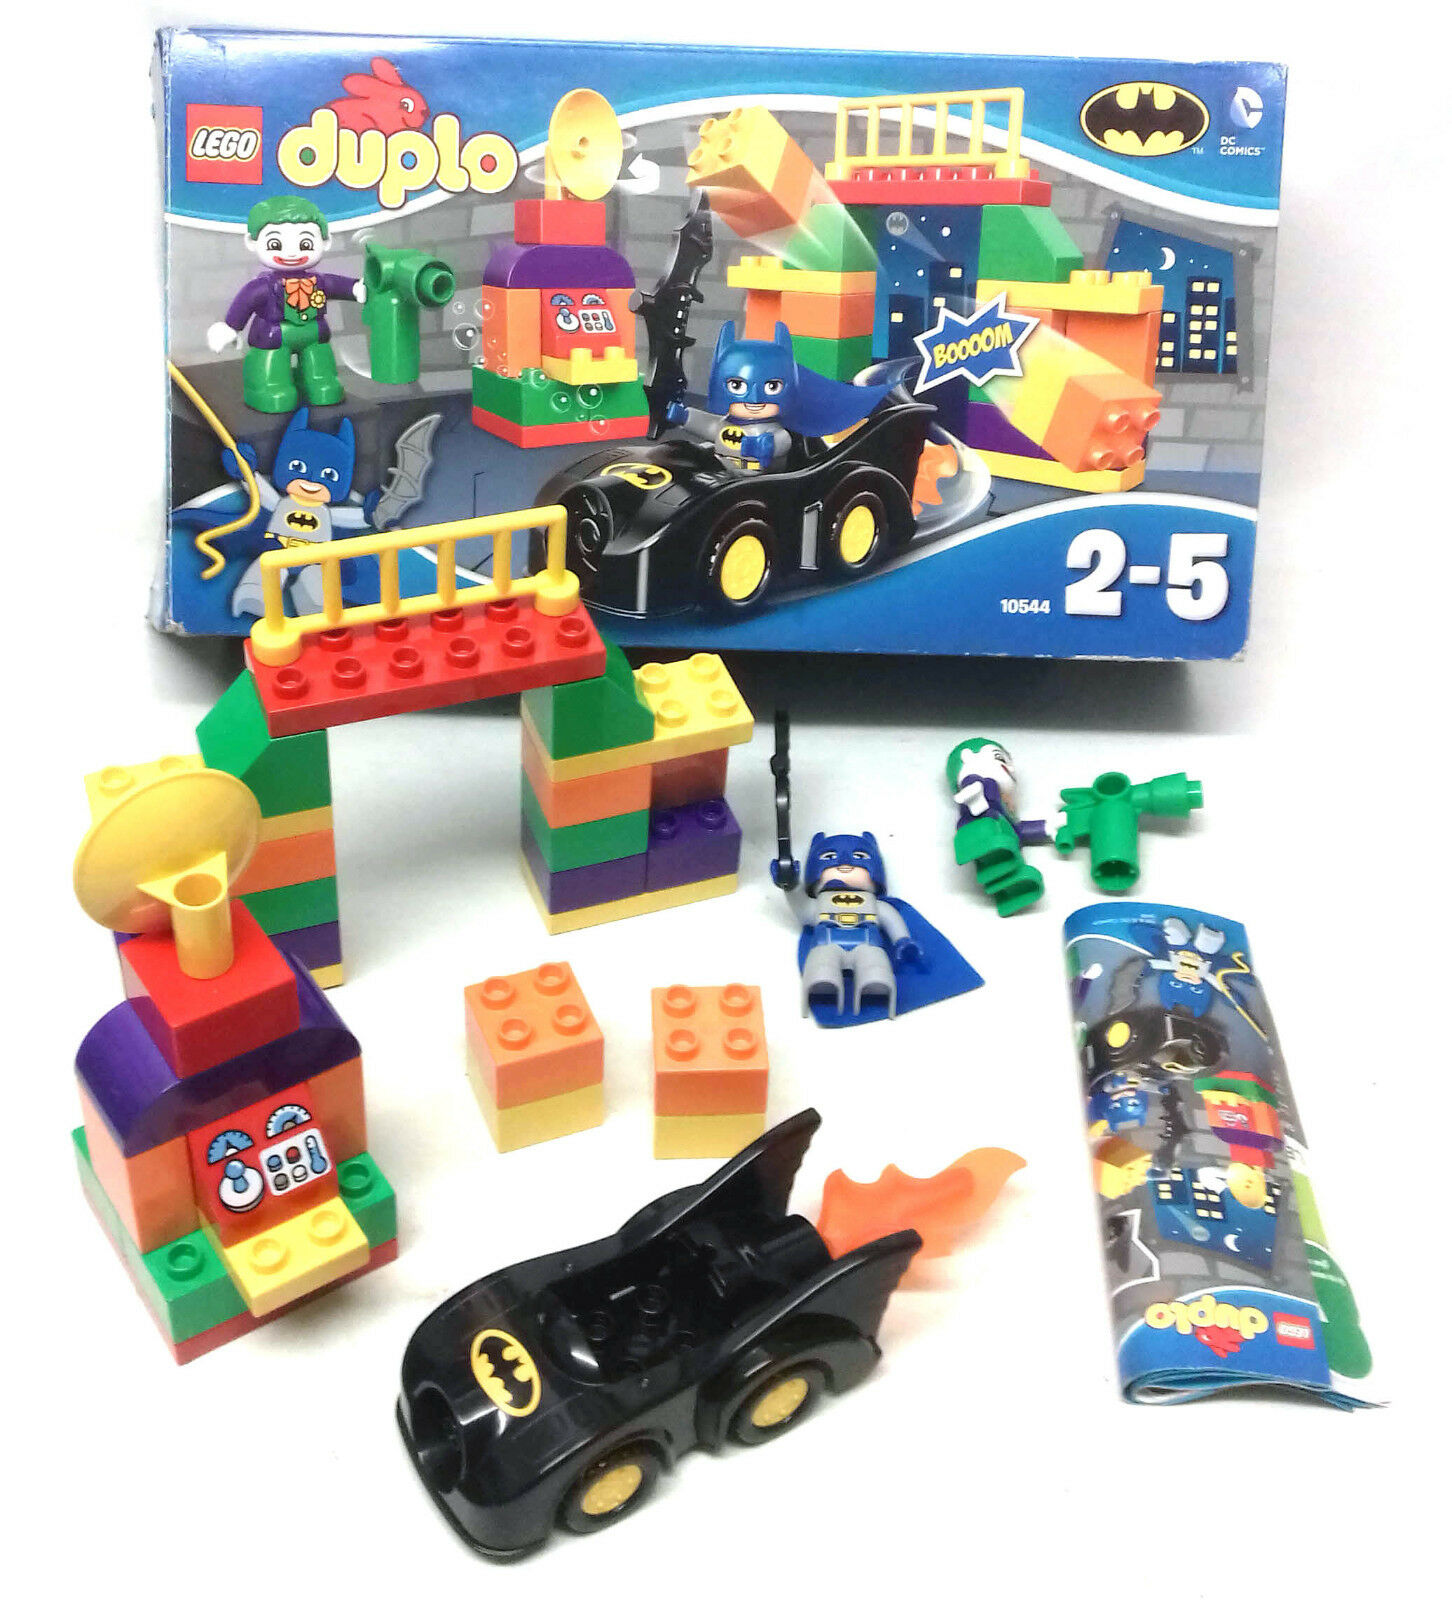 LEGO Duplo Toys set 10554 Batman Joker figures Batcar Batcar Batcar etc with box ages 2-5 aba633